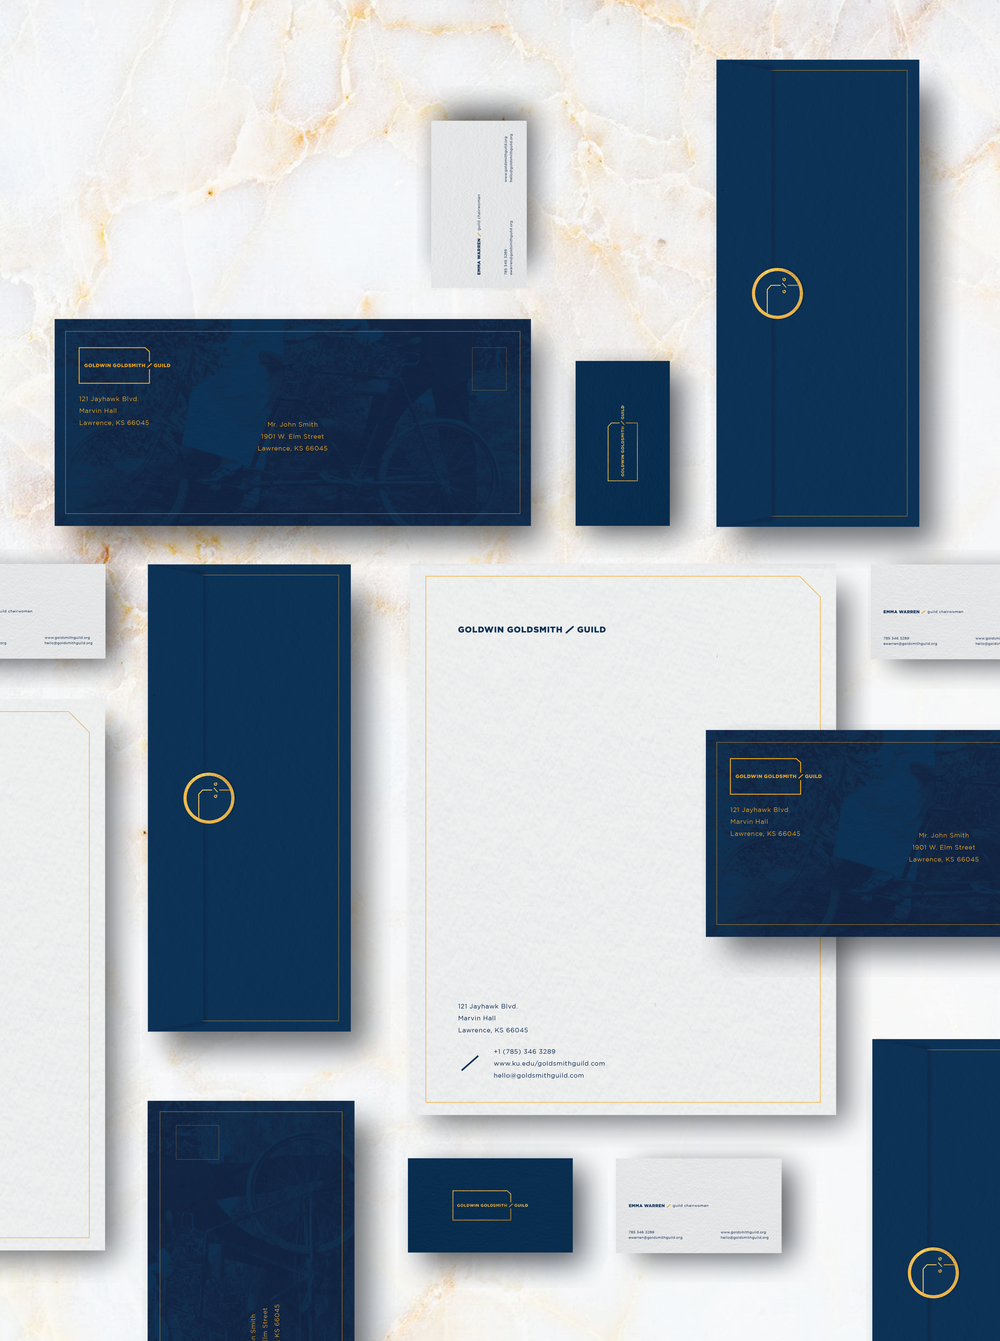 Using premium paper and gold foil accents help convey the prestige of the organization.